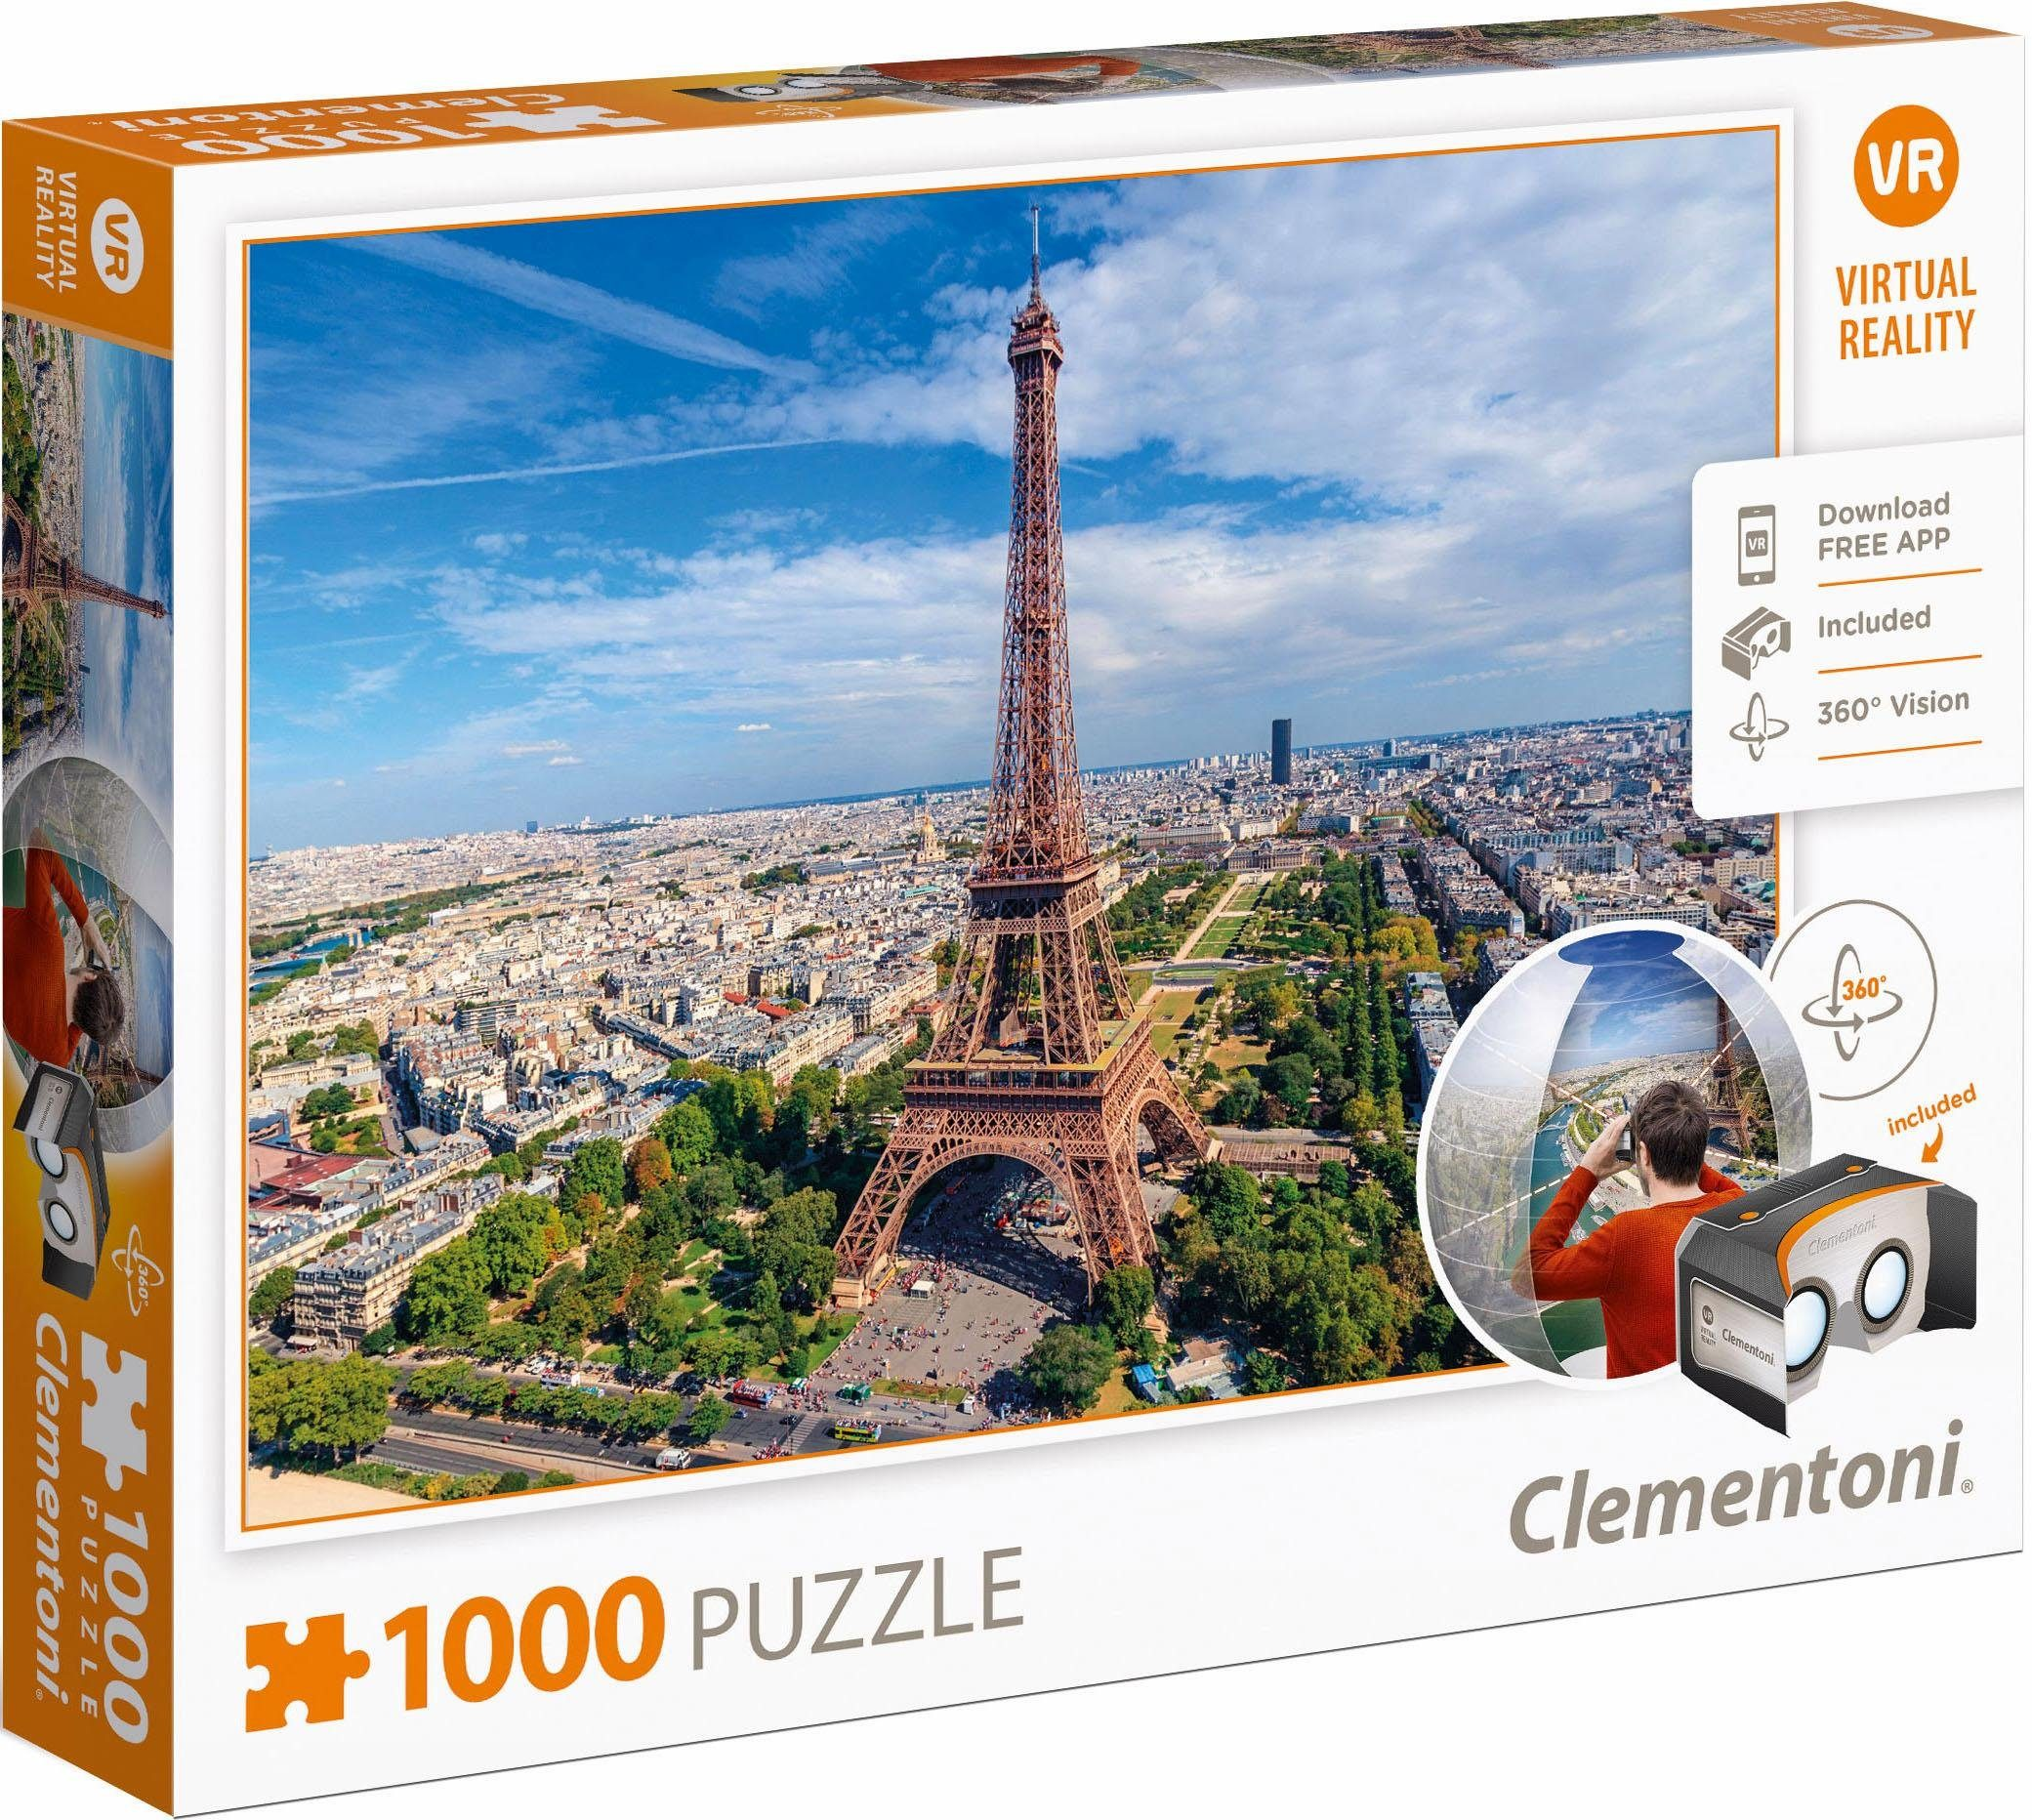 Clementoni Puzzle, 1000 Teile, »Paris, Virtual Reality«